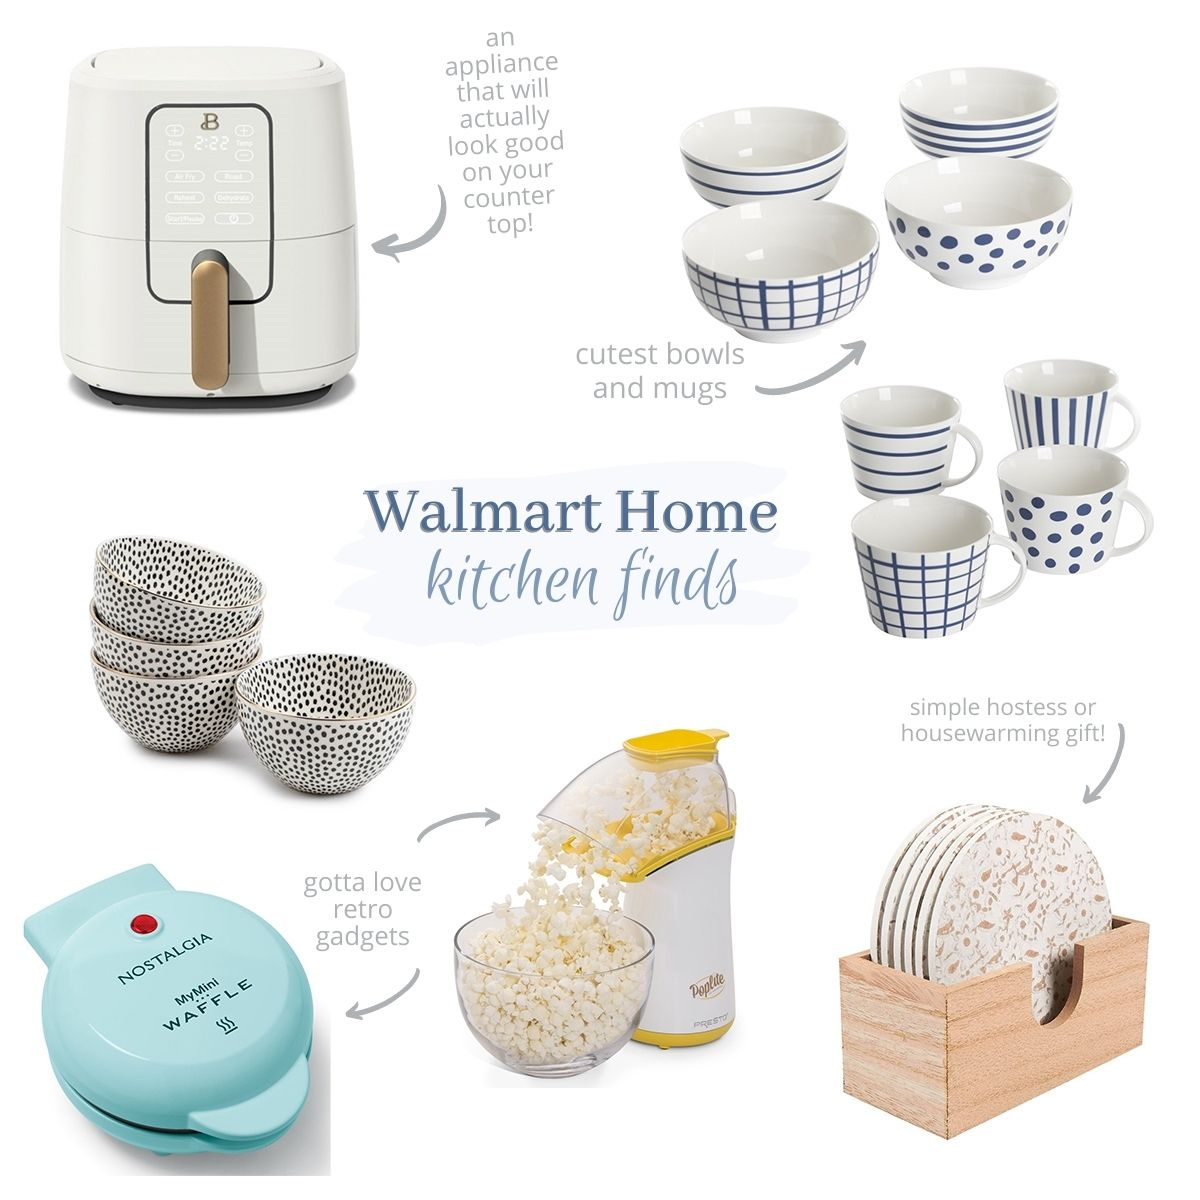 Diagramcollage of products from Walmart